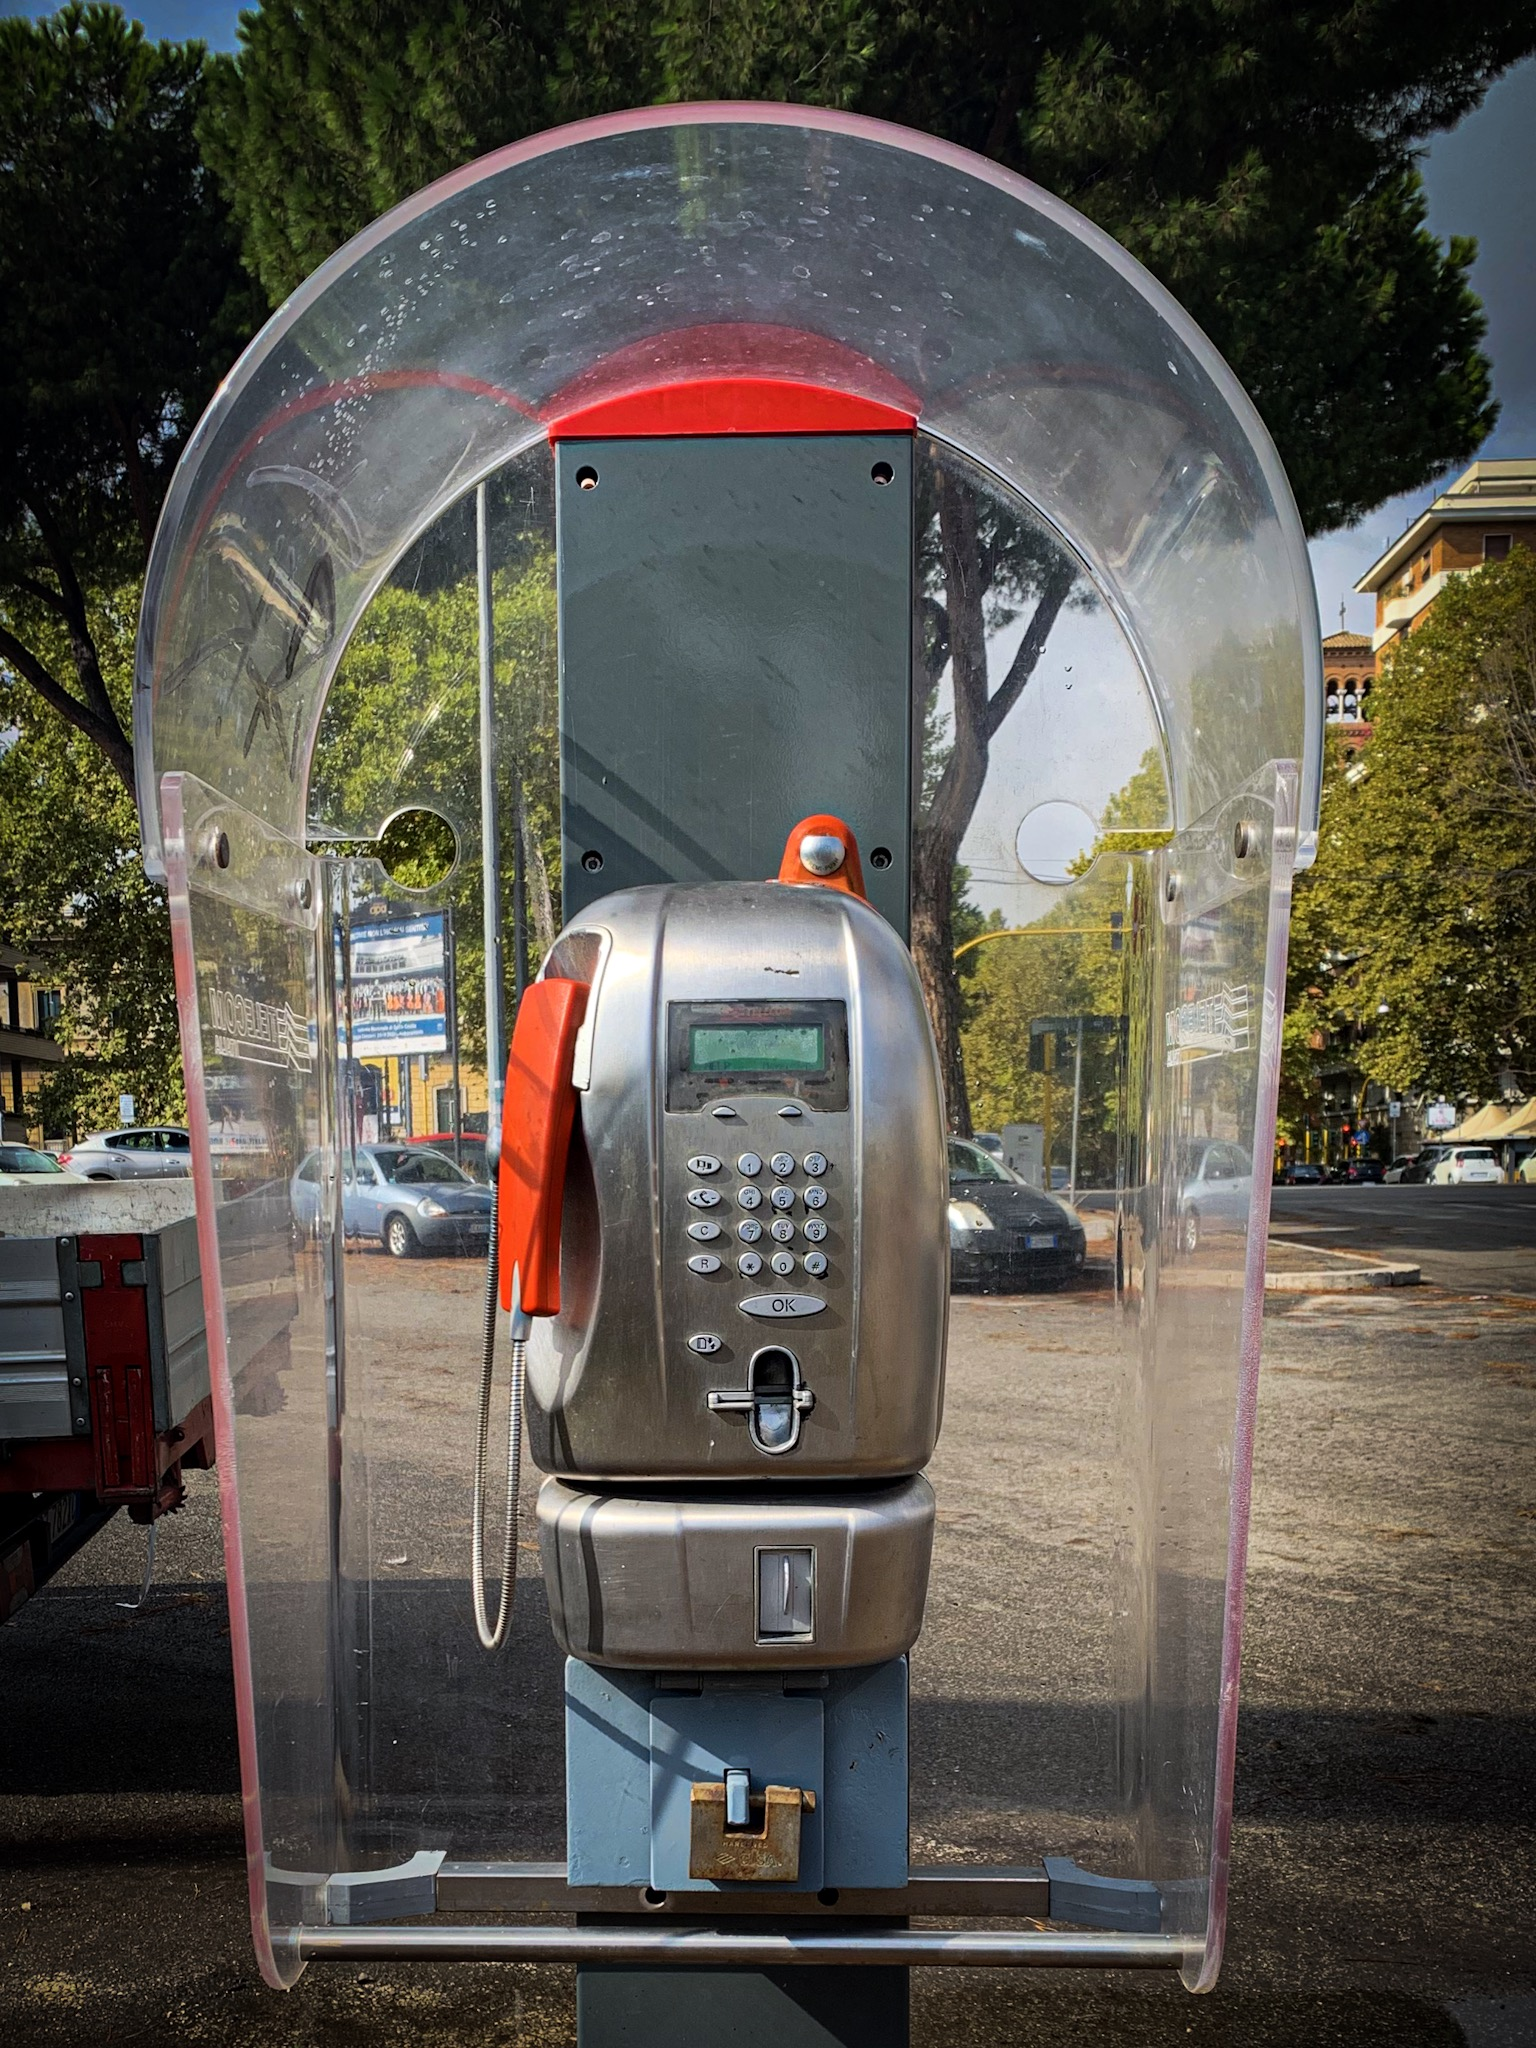 A working pay phone.